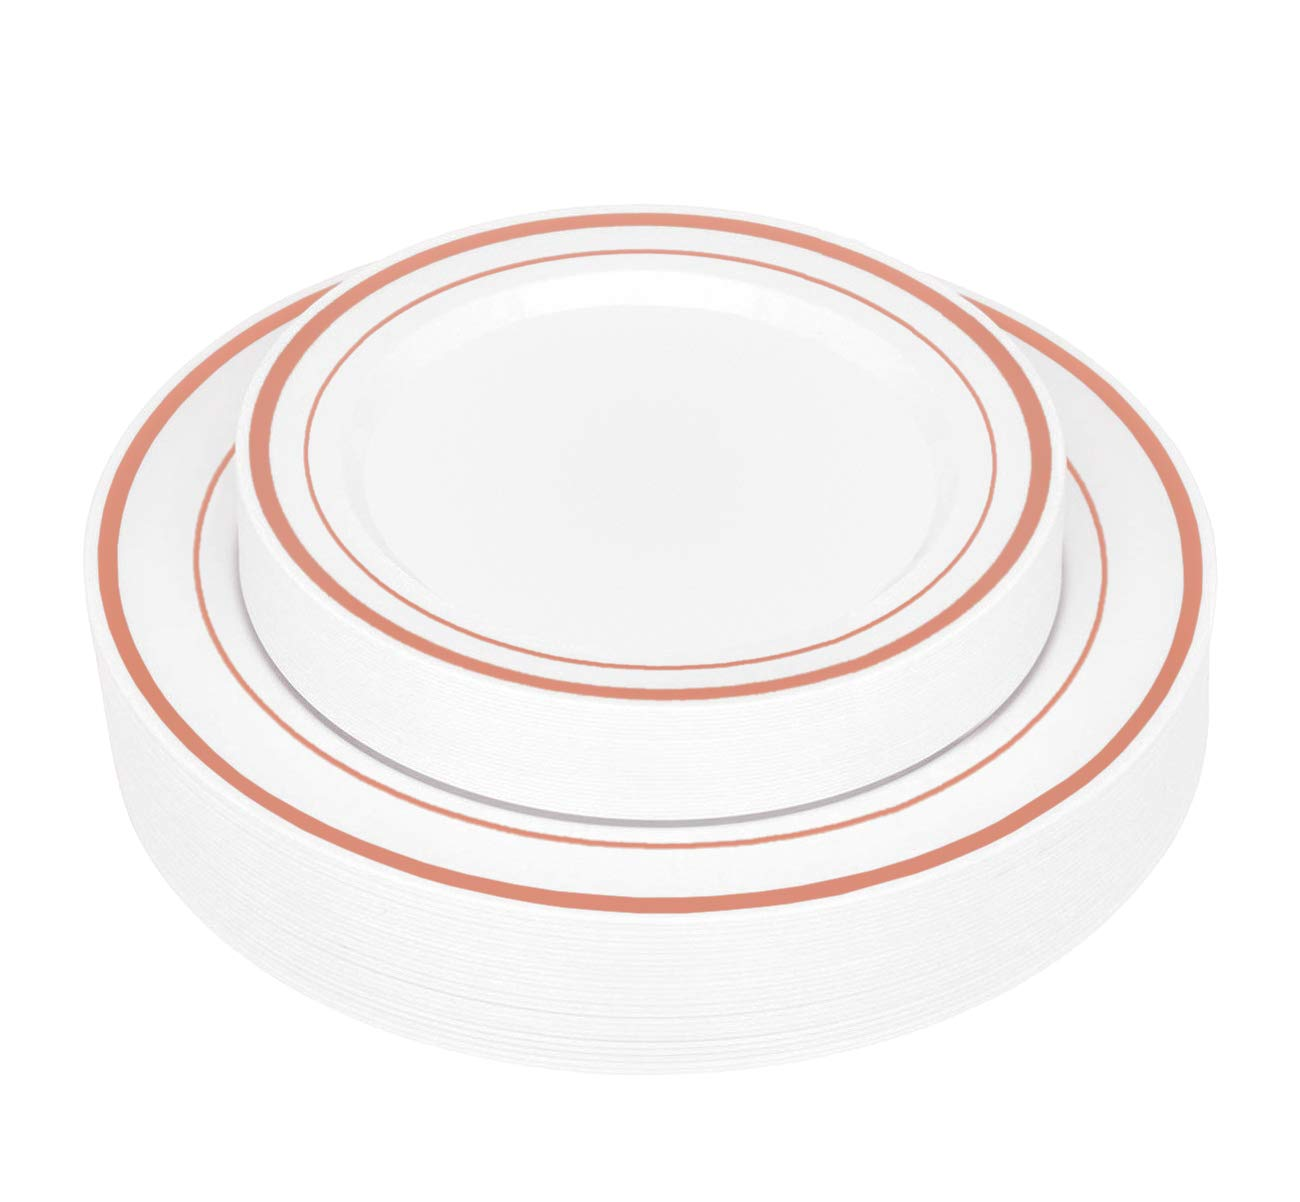 50-Piece Elegant Plastic Plates Set Service for 25 Disposable Plates Combo Include: 25 Dinner Plates & 25 Salad Plates for Weddings, Parties, Catering & Everyday Use (Rose Gold Rim) -Stock Your Home